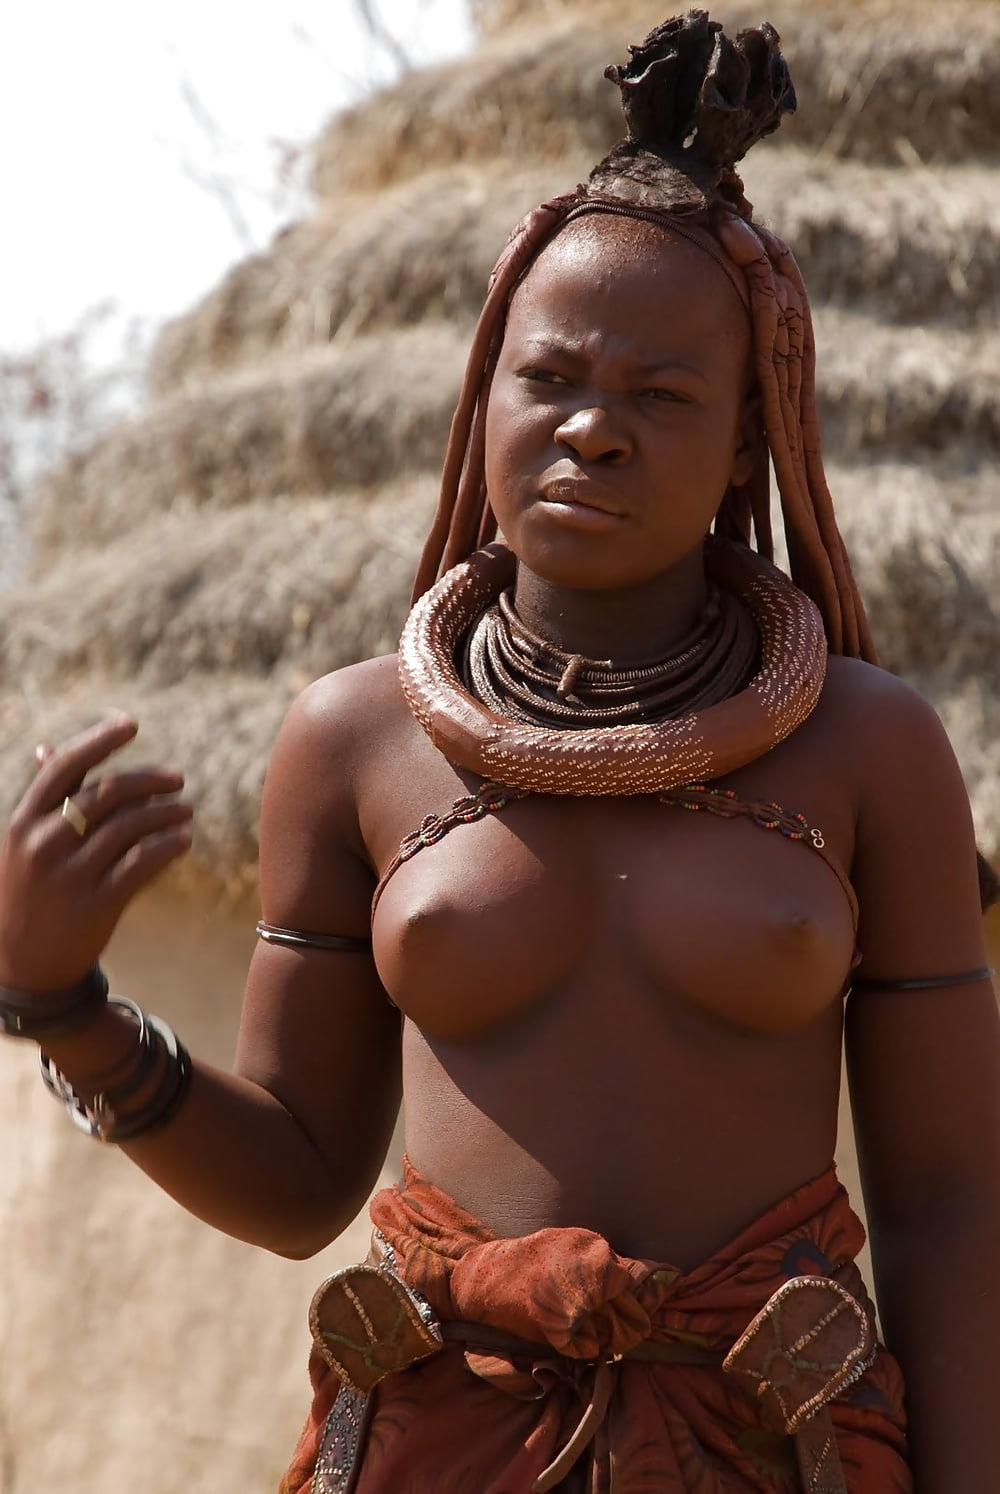 Xxx girl of africa, luna big natural tits pics